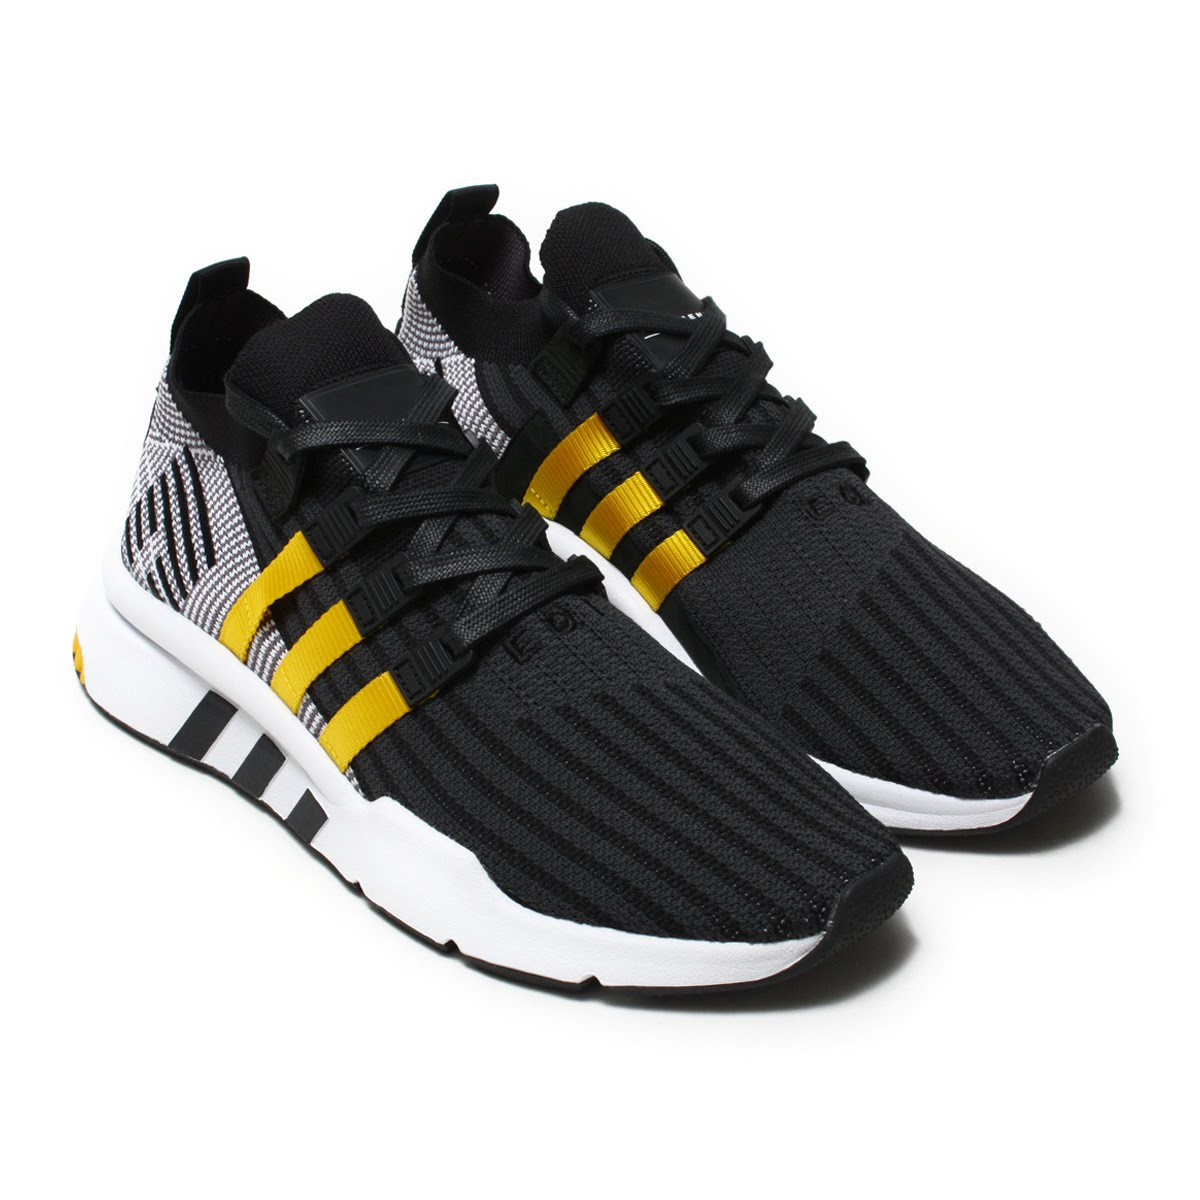 the latest 3a76e c5921 adidas Originals EQT SUPPORT MID ADV PK (Adidas originals E cue tea support  mid ADV PK) Core BlackEqt YellowRunning White 18SS-I